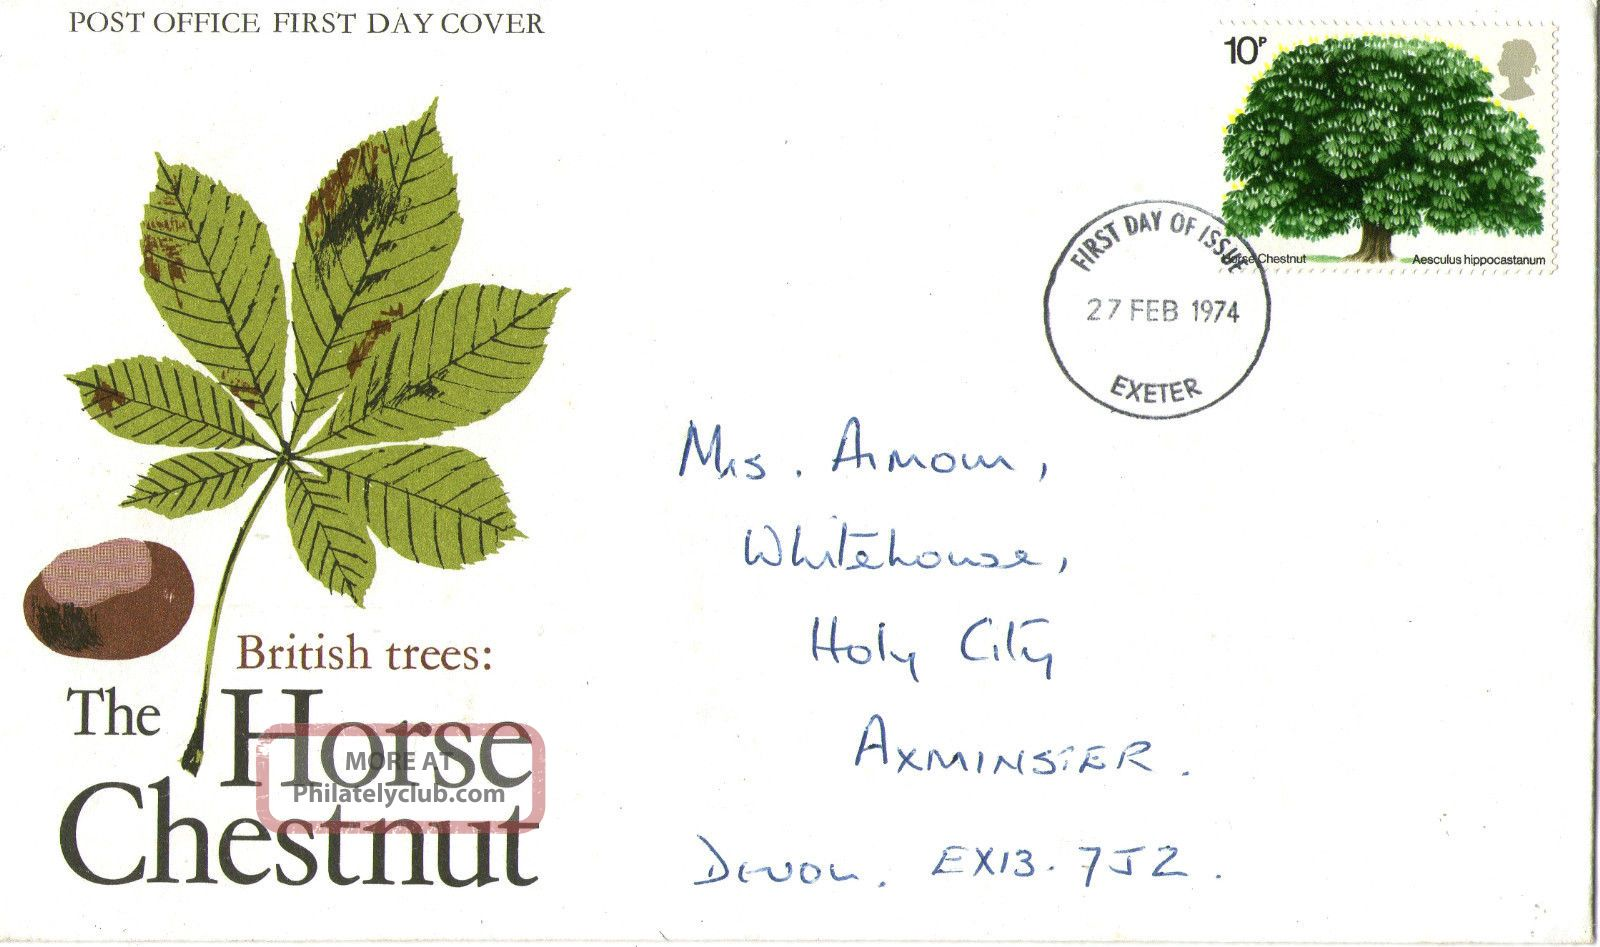 27 February 1974 The Horse Chestnut Tree Po First Day Cover Exeter Fdi Topical Stamps photo